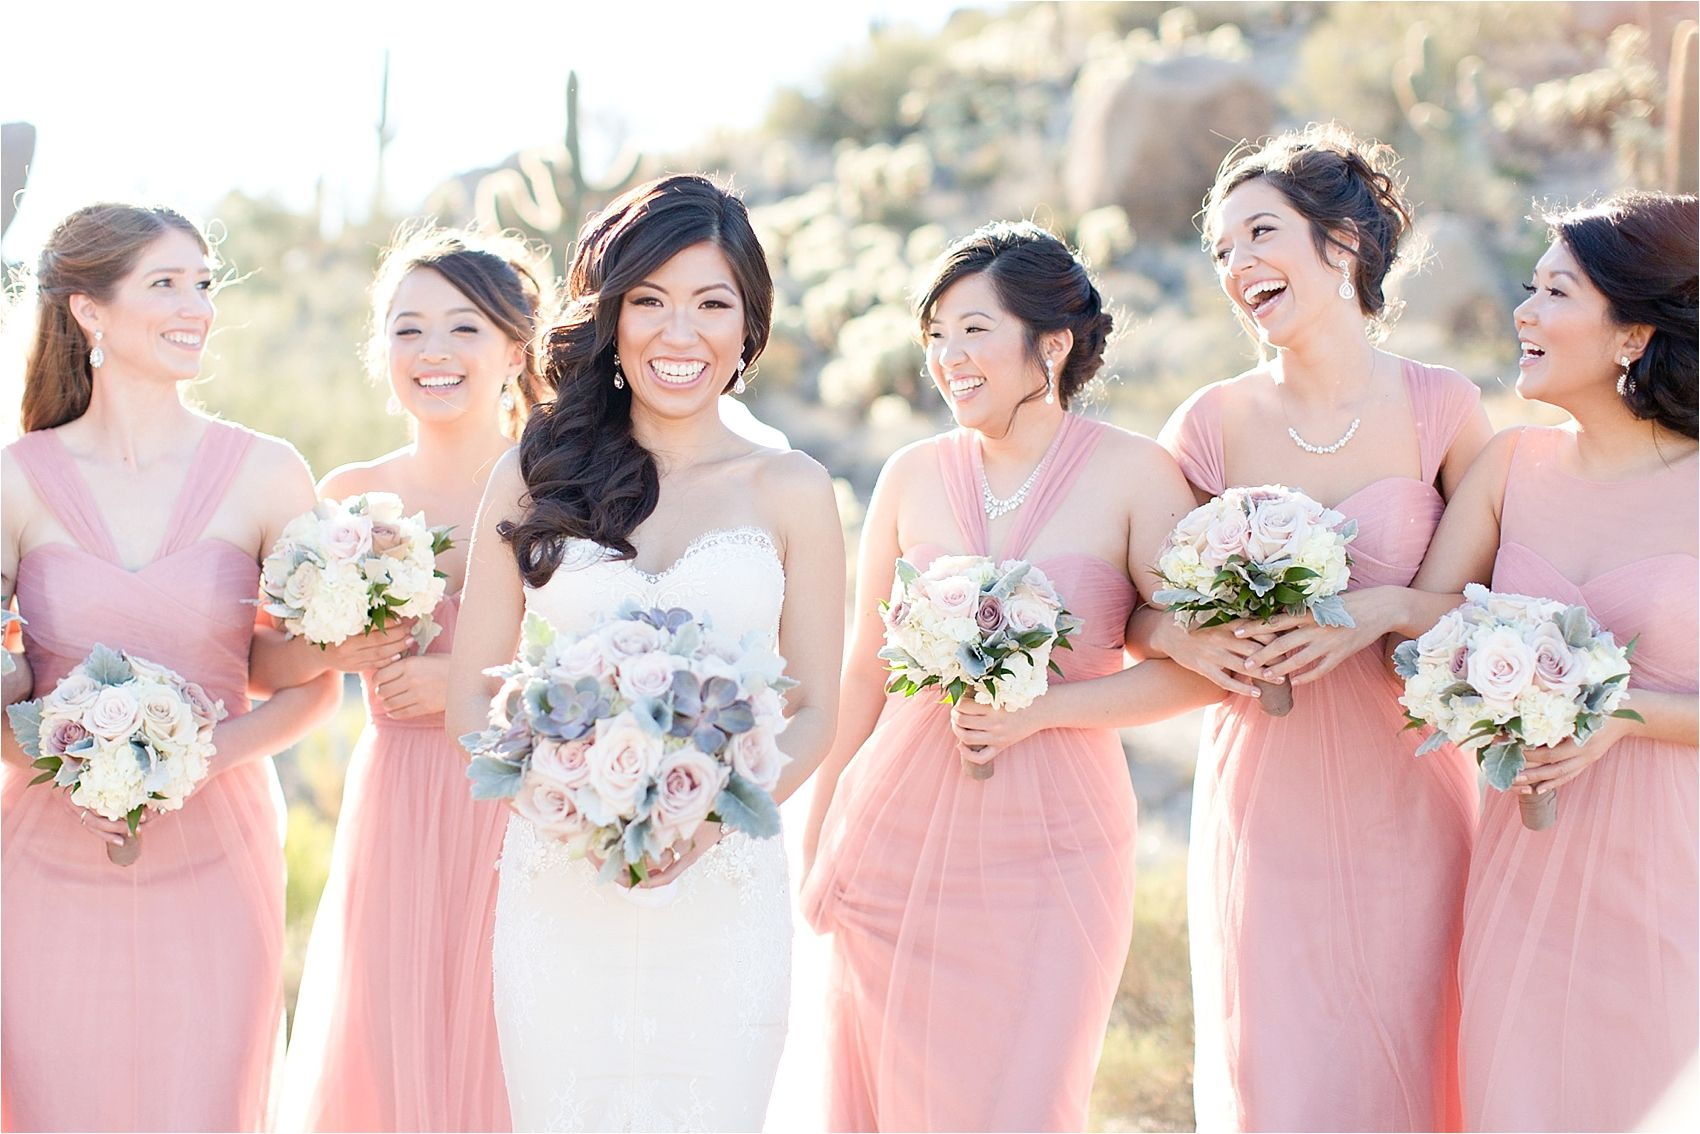 Blush and navy four seasons troon north wedding inbal dror blush and navy four seasons troon north wedding ombrellifo Images